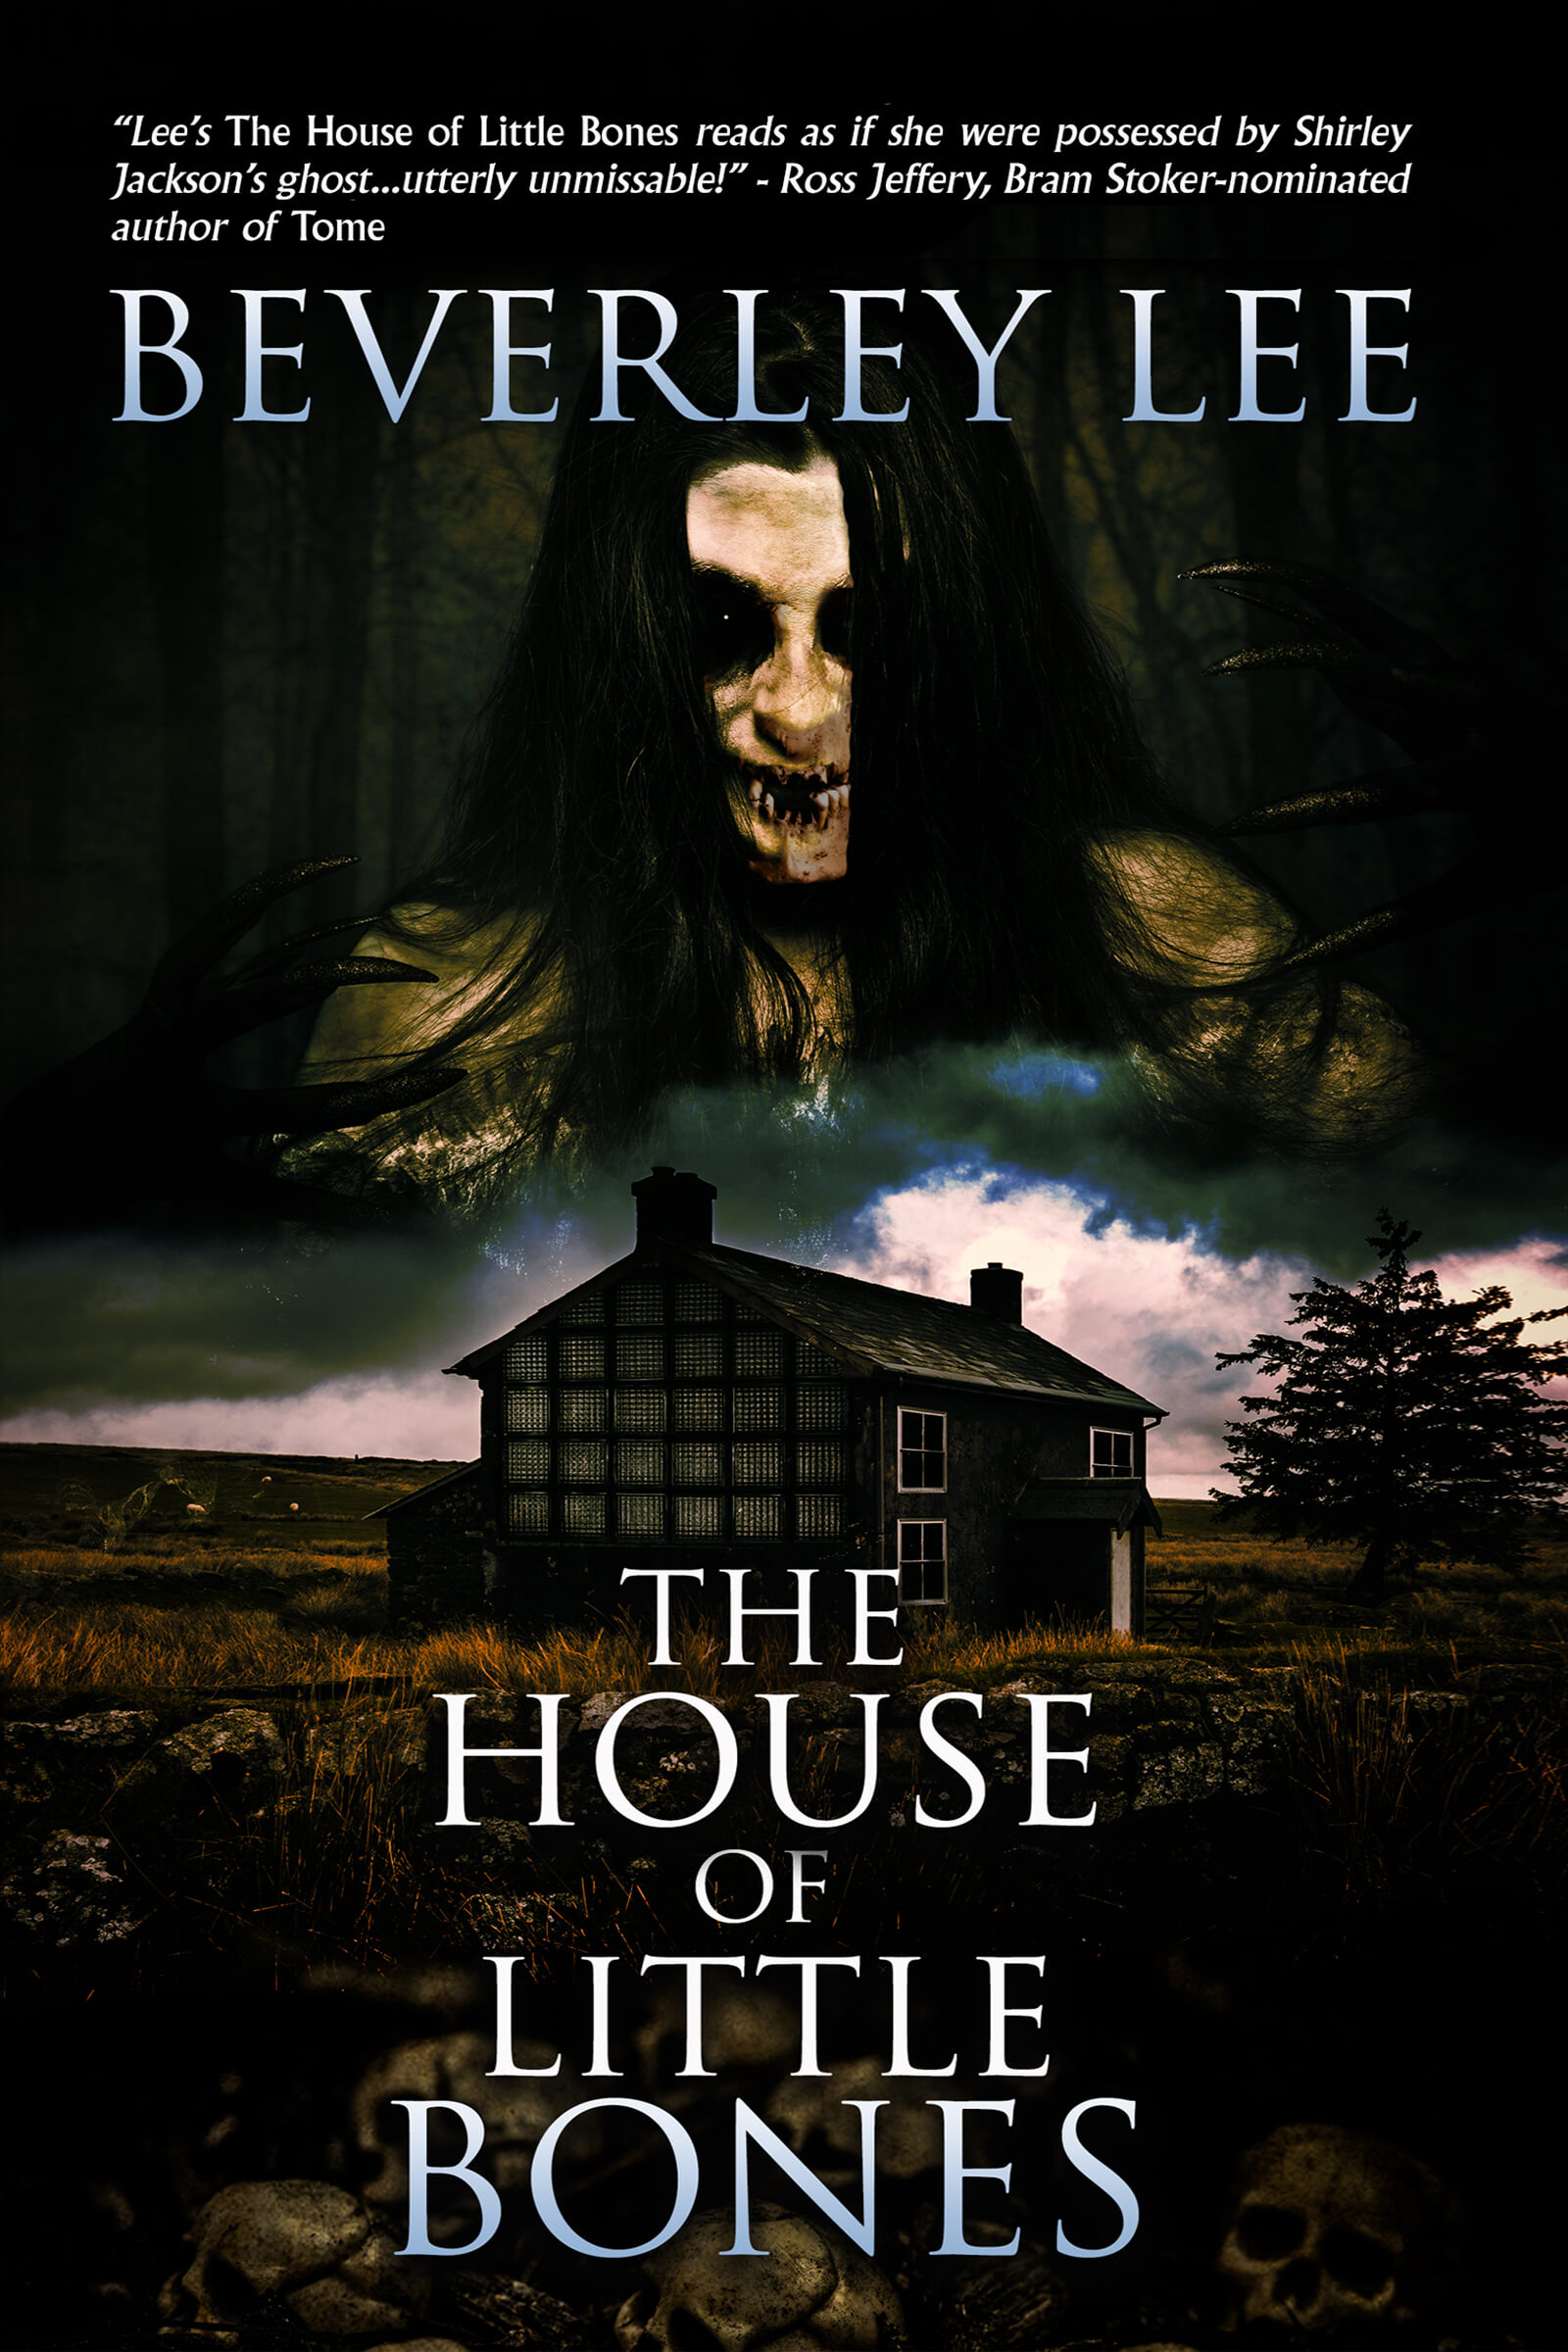 The House of Little Bones eBook and hardcover